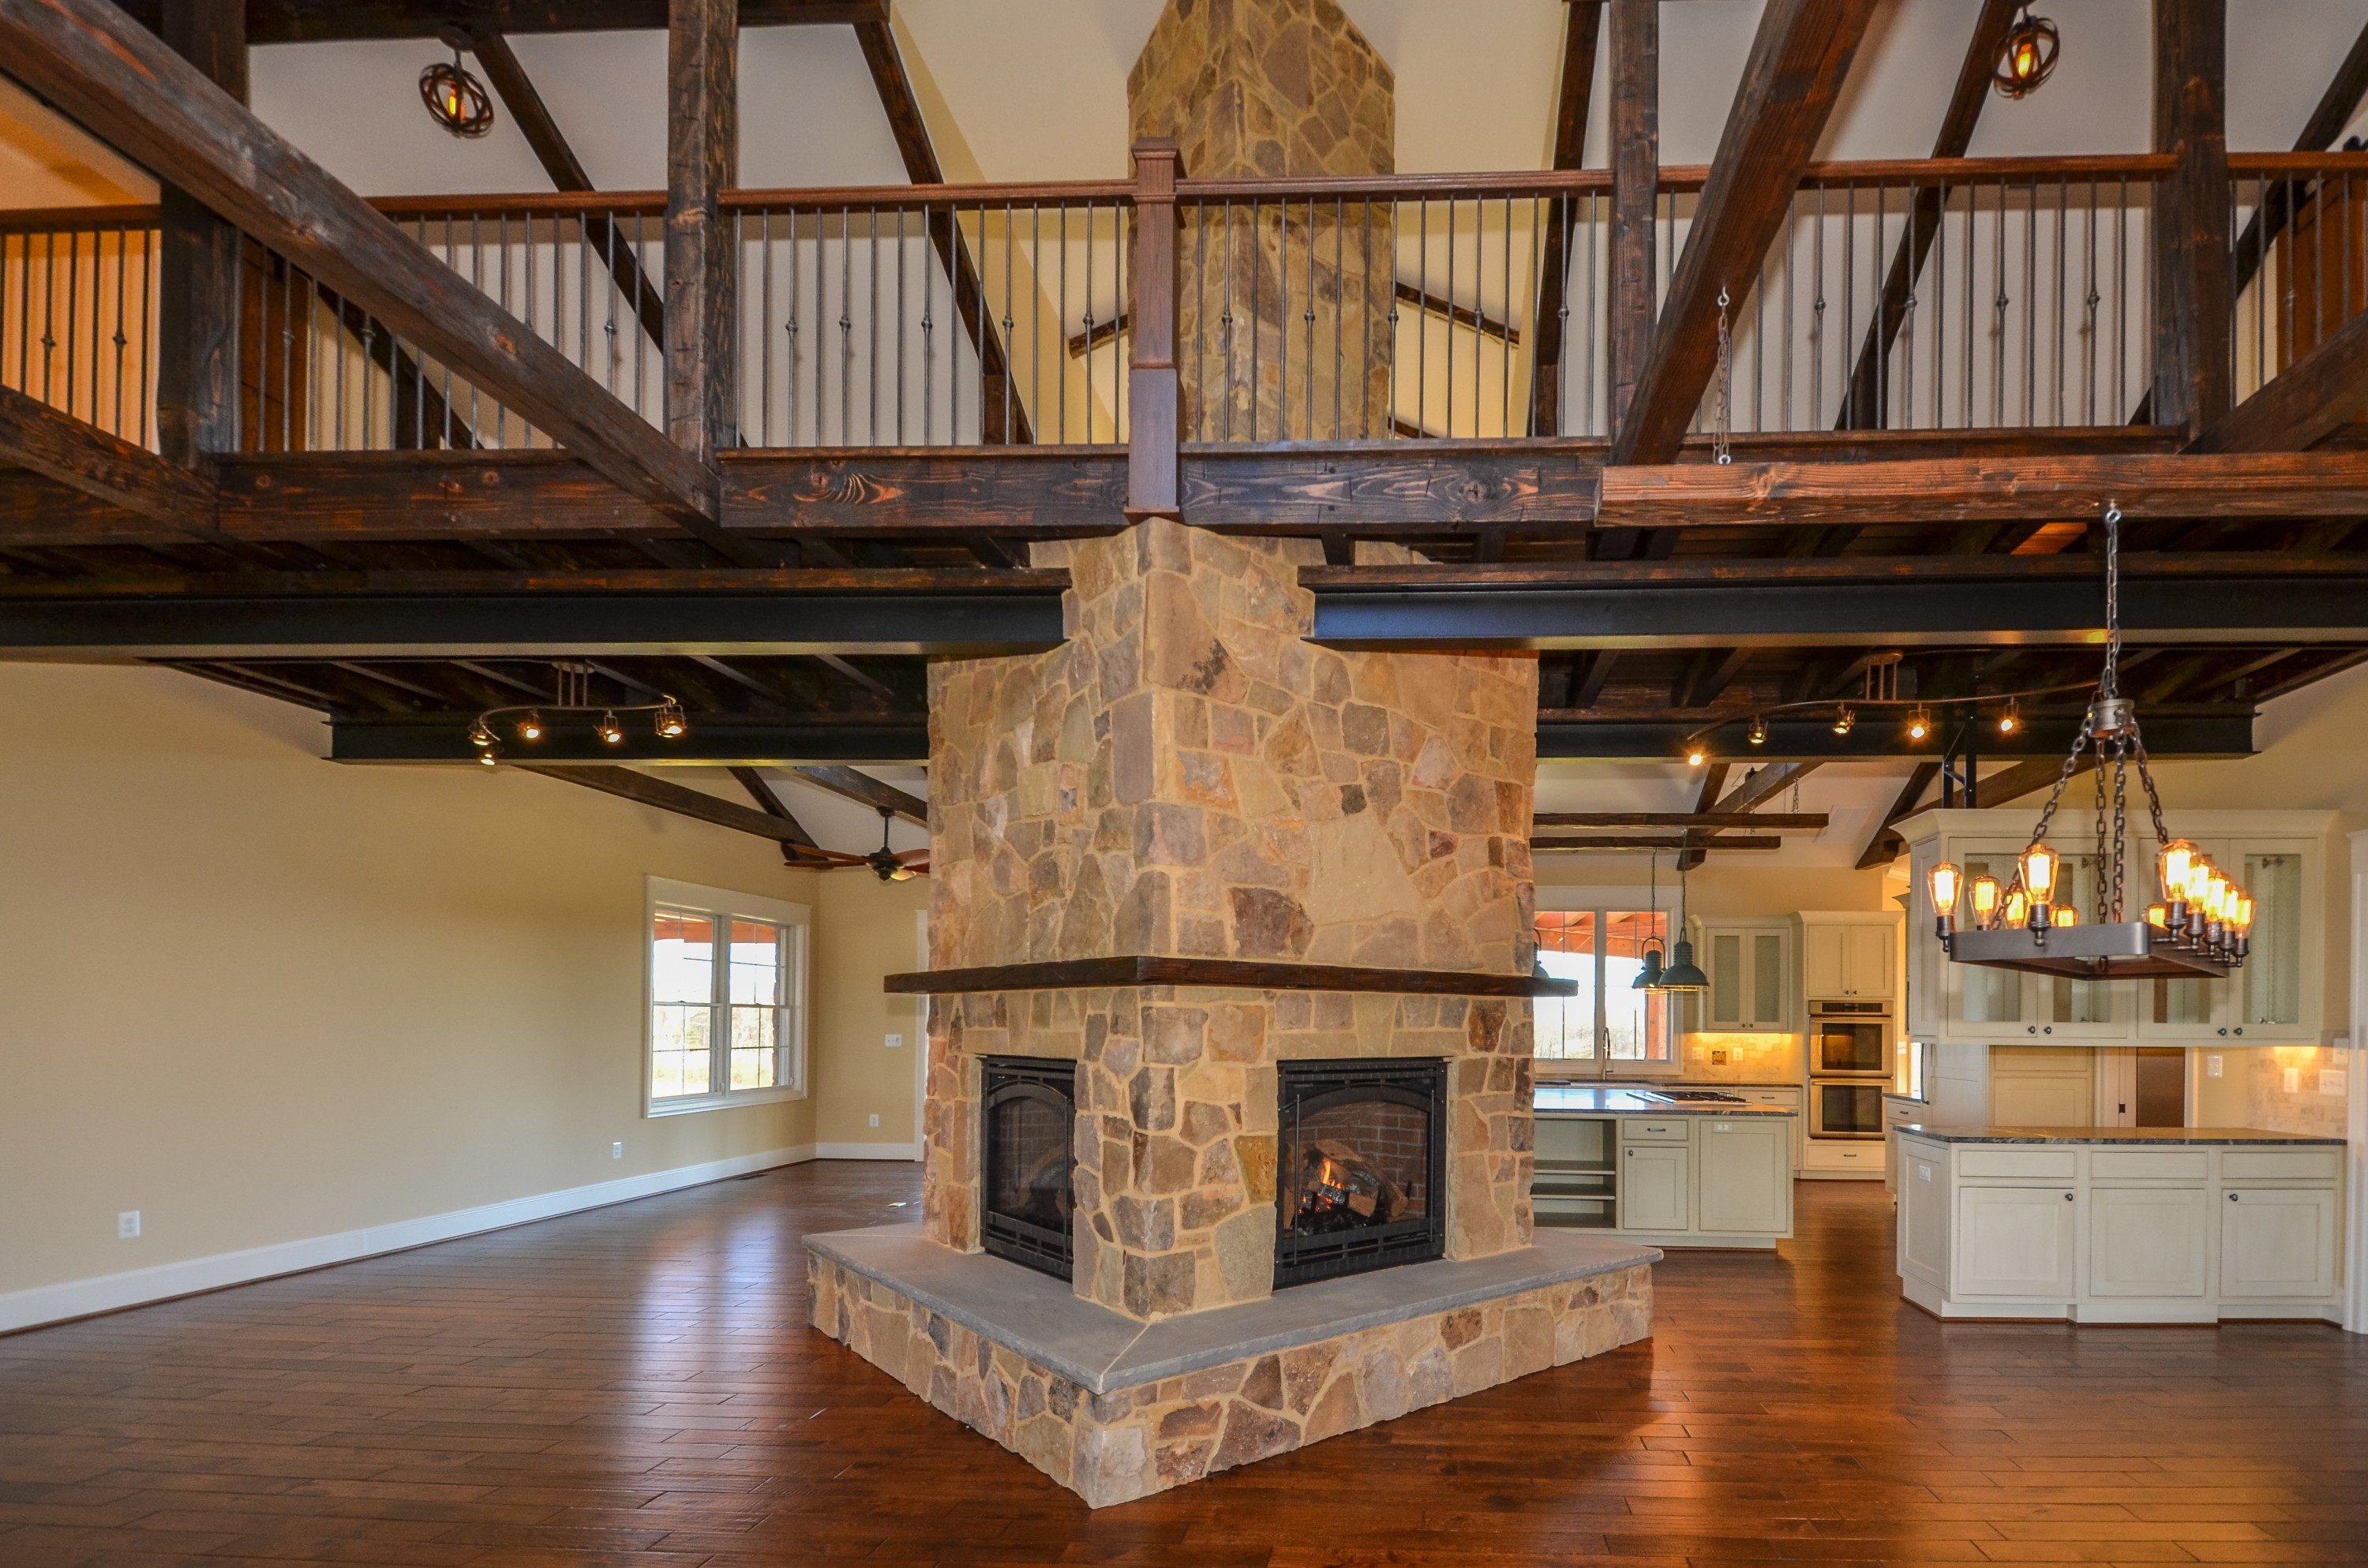 finishing details include spectacular beams and stonework